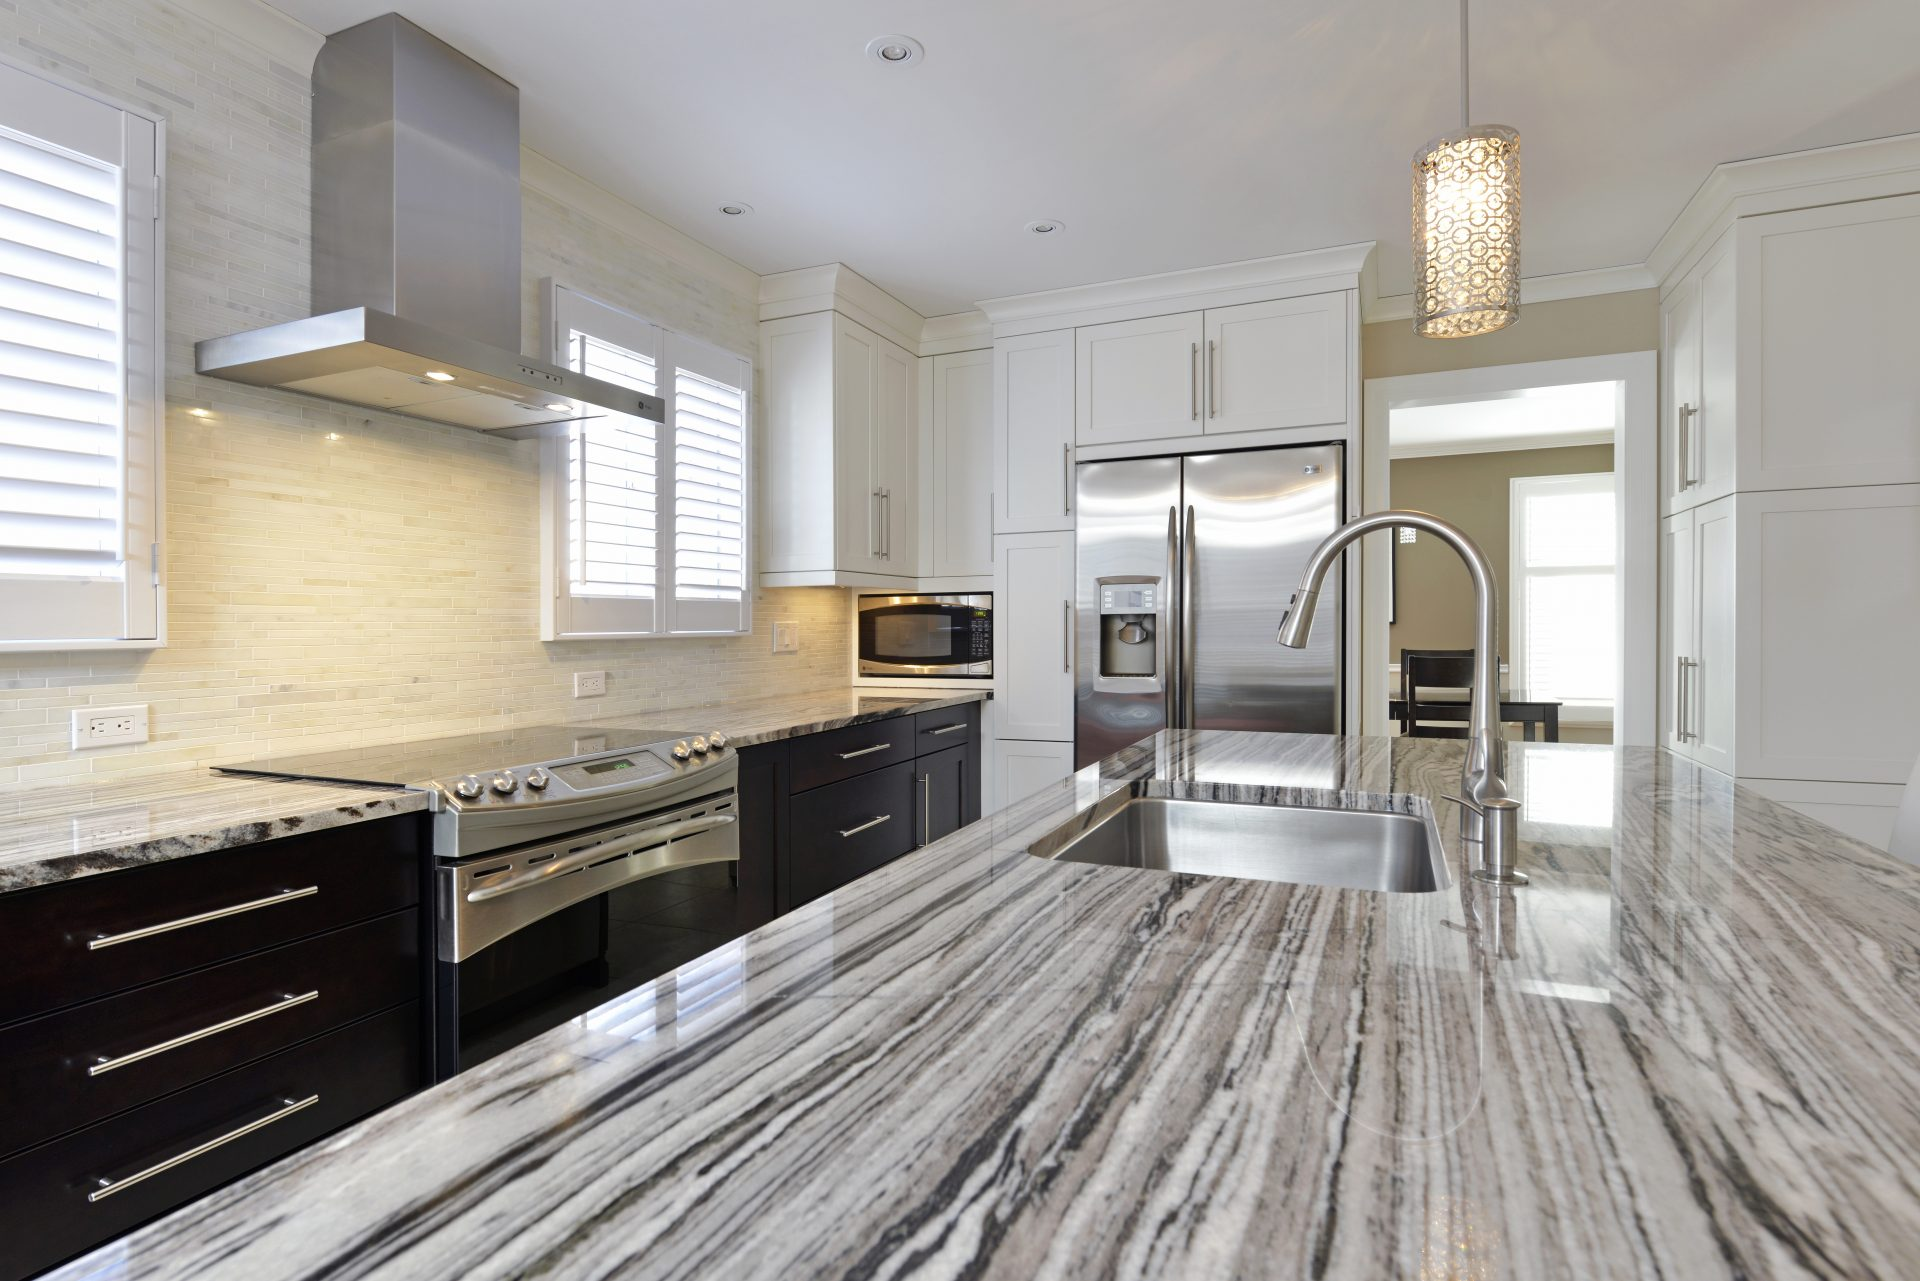 5 signs it's time for a kitchen remodel from Sutcliffe Kitchens